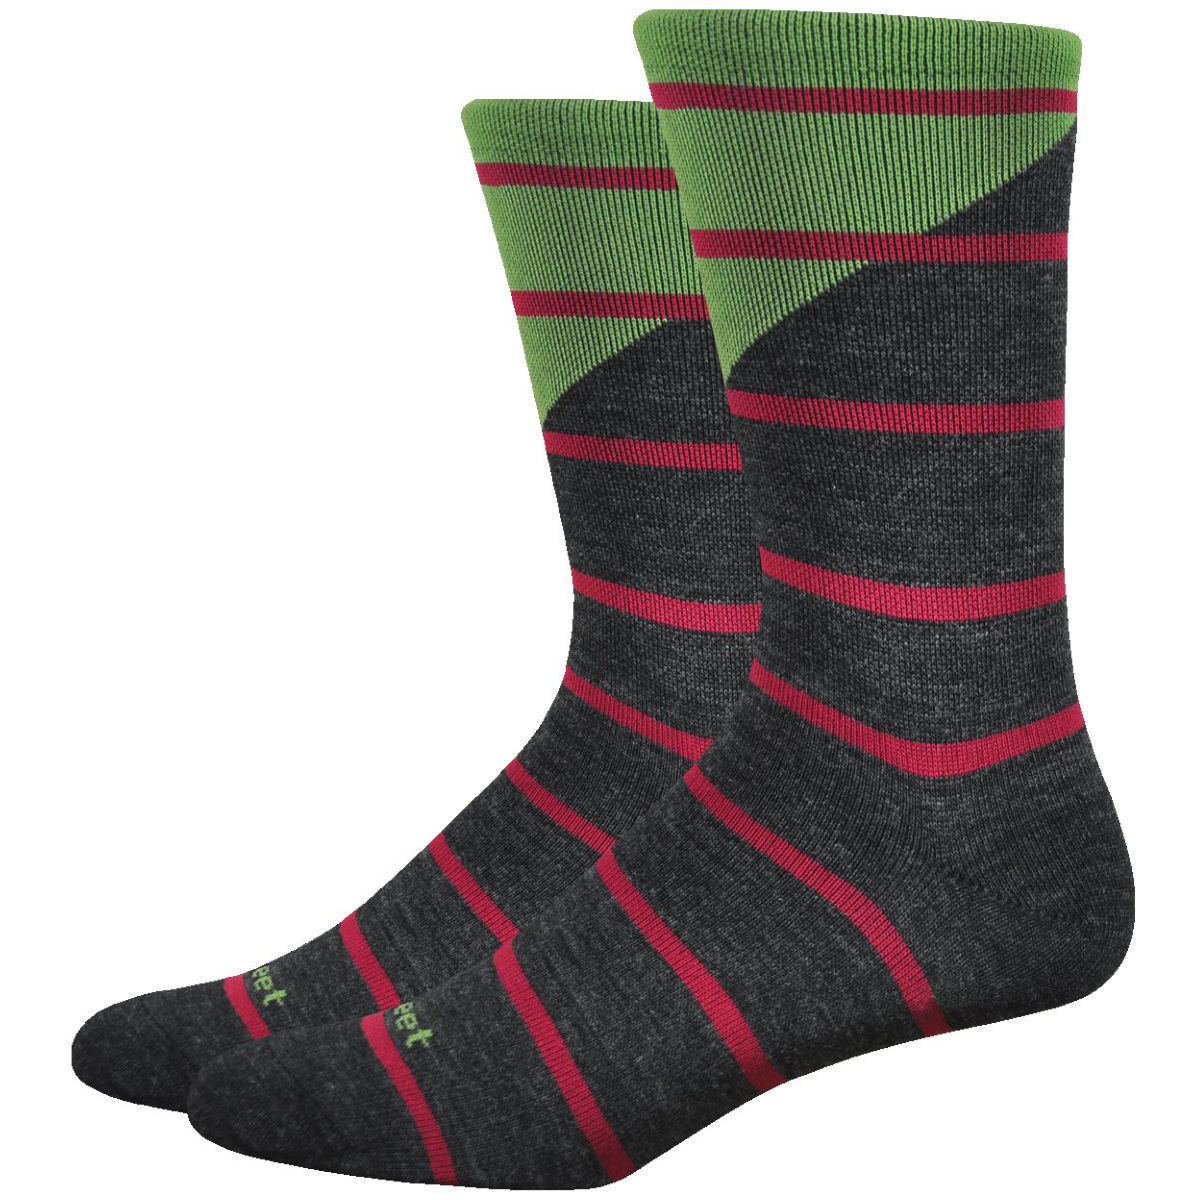 "DeFeet DeFeet Mondo Wool 7"" Tieon Socks   Socks"